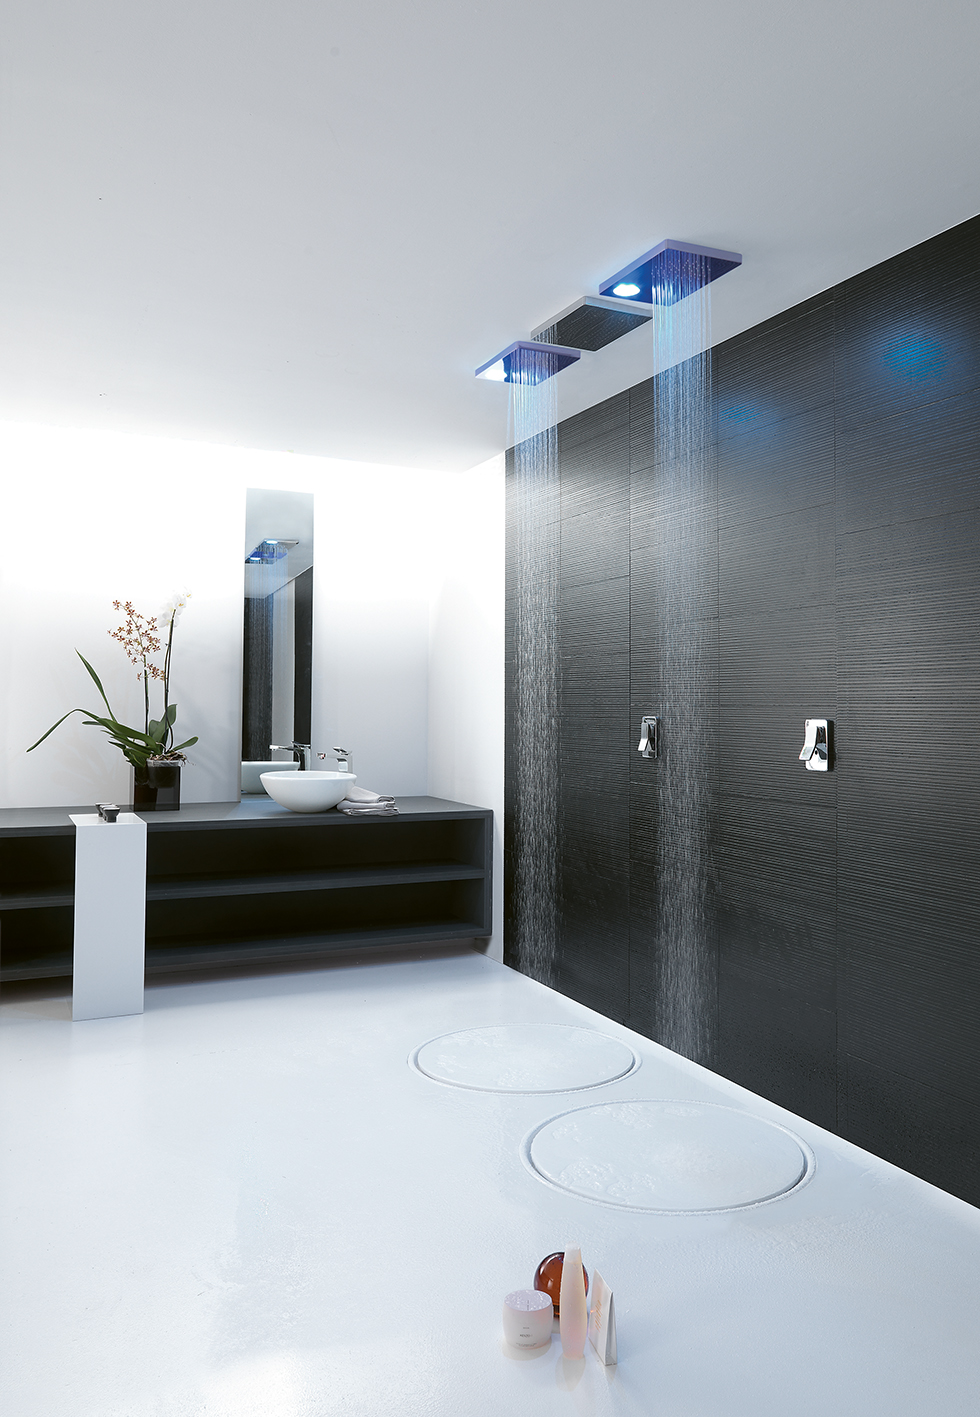 6.Zuchetti.Kos Luxury bathroom